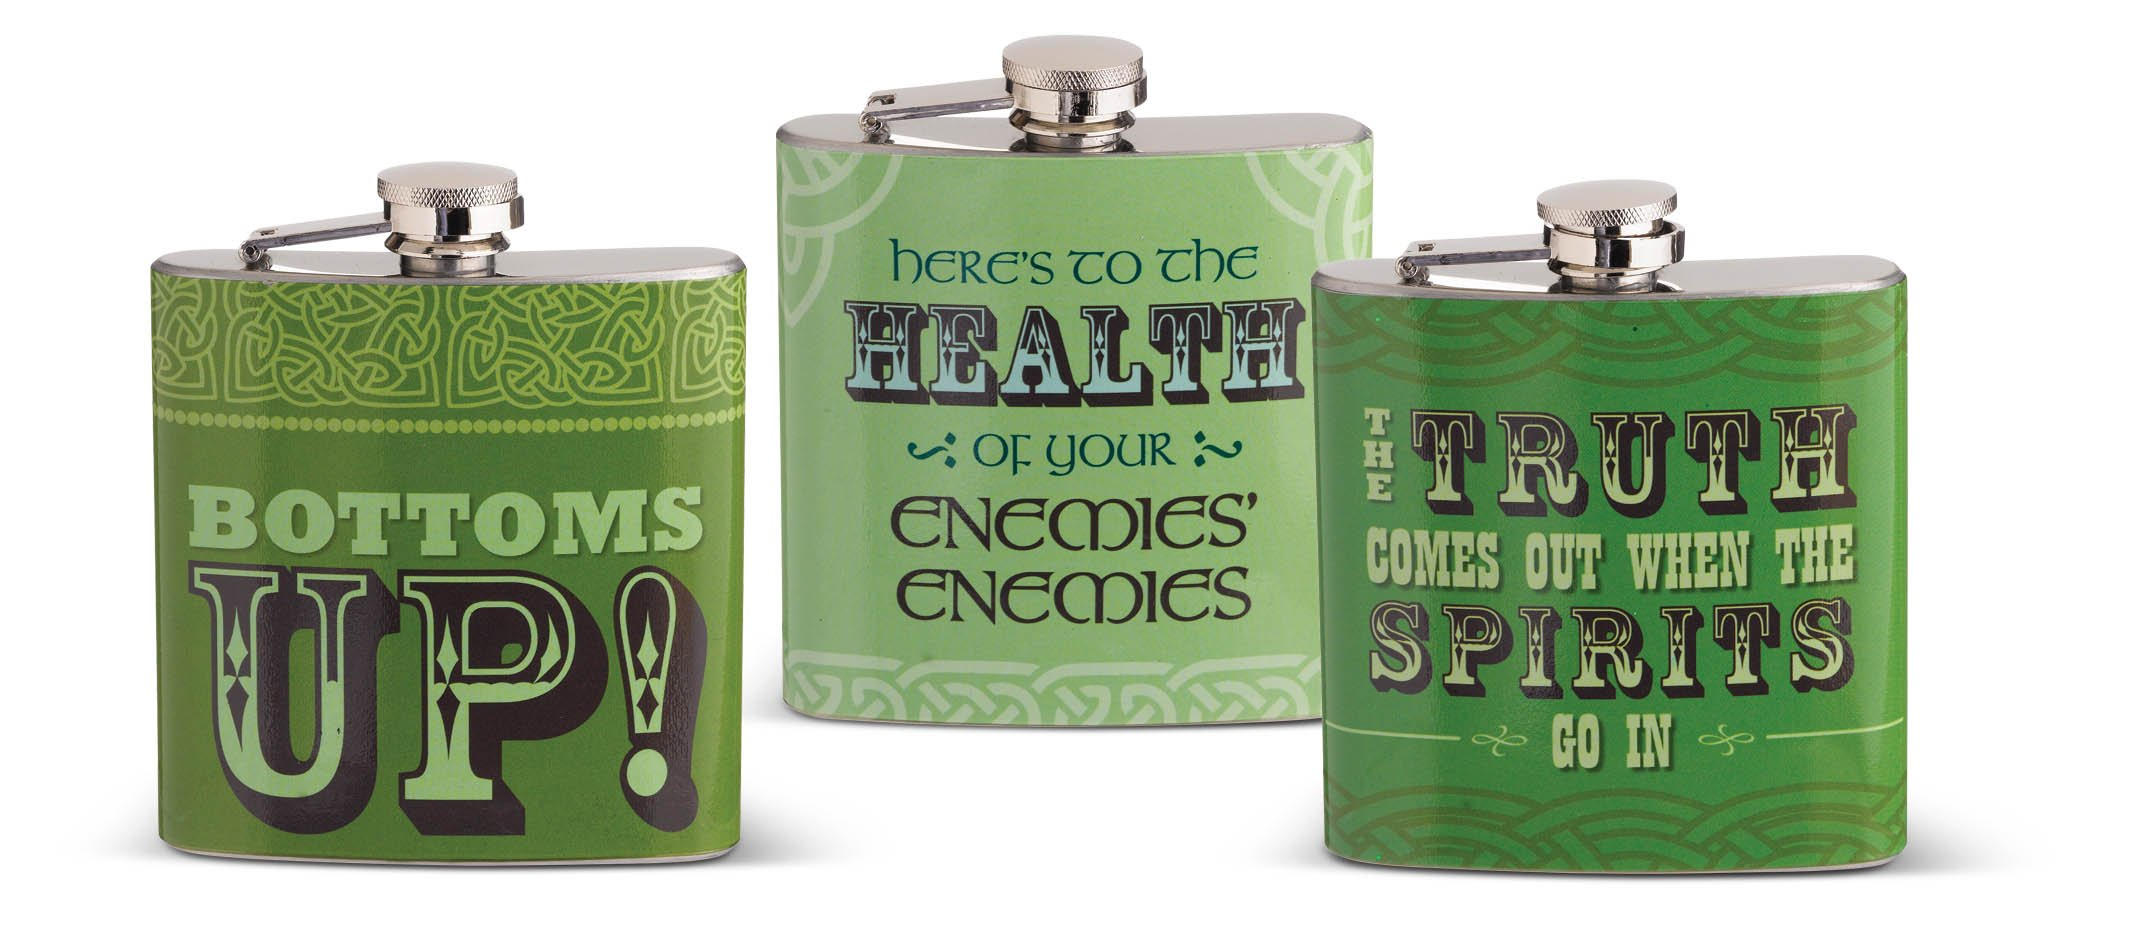 Grasslands Road 463898 Celtic Ceramic Gift Boxed Flask Assortment (15 Pack), Small, Green/Lime/Brown/Gold/Silver/Black